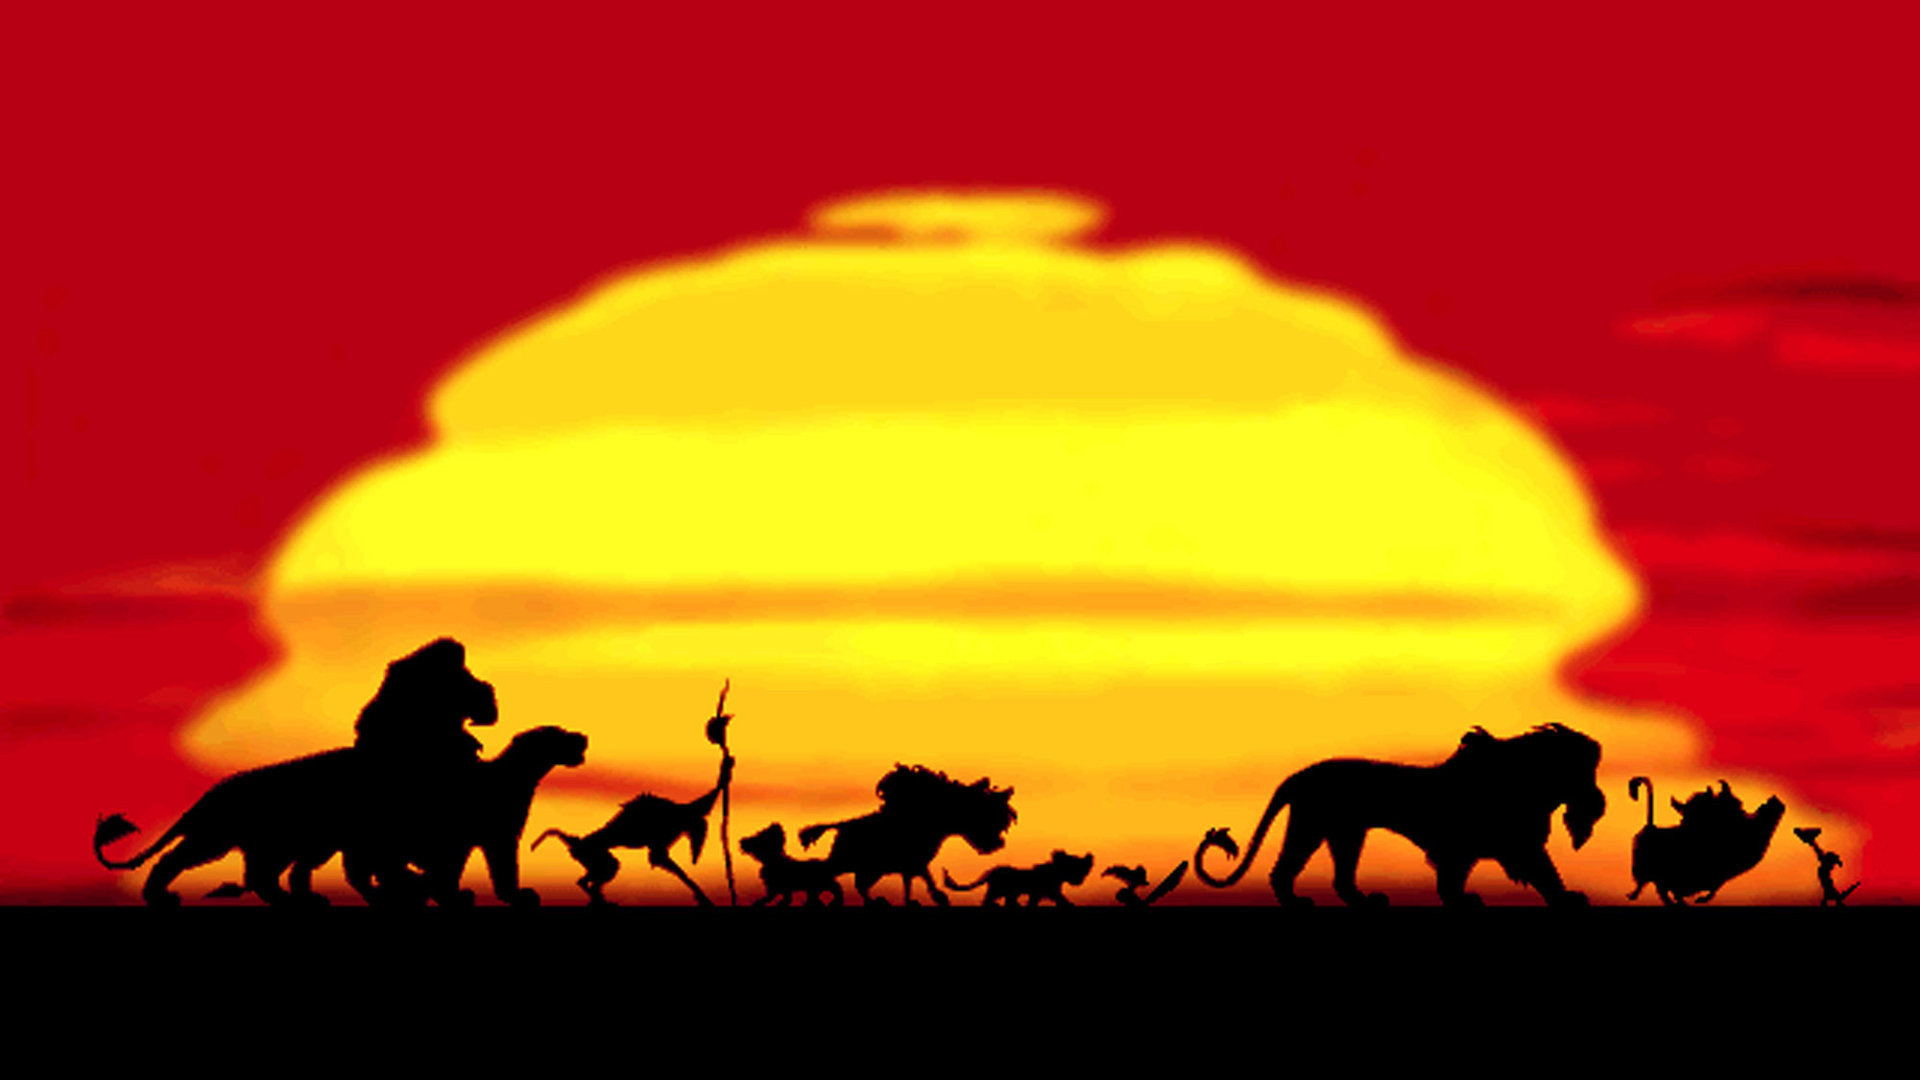 Free Download The Lion King Background Id 271259 Hd 1080p For Pc